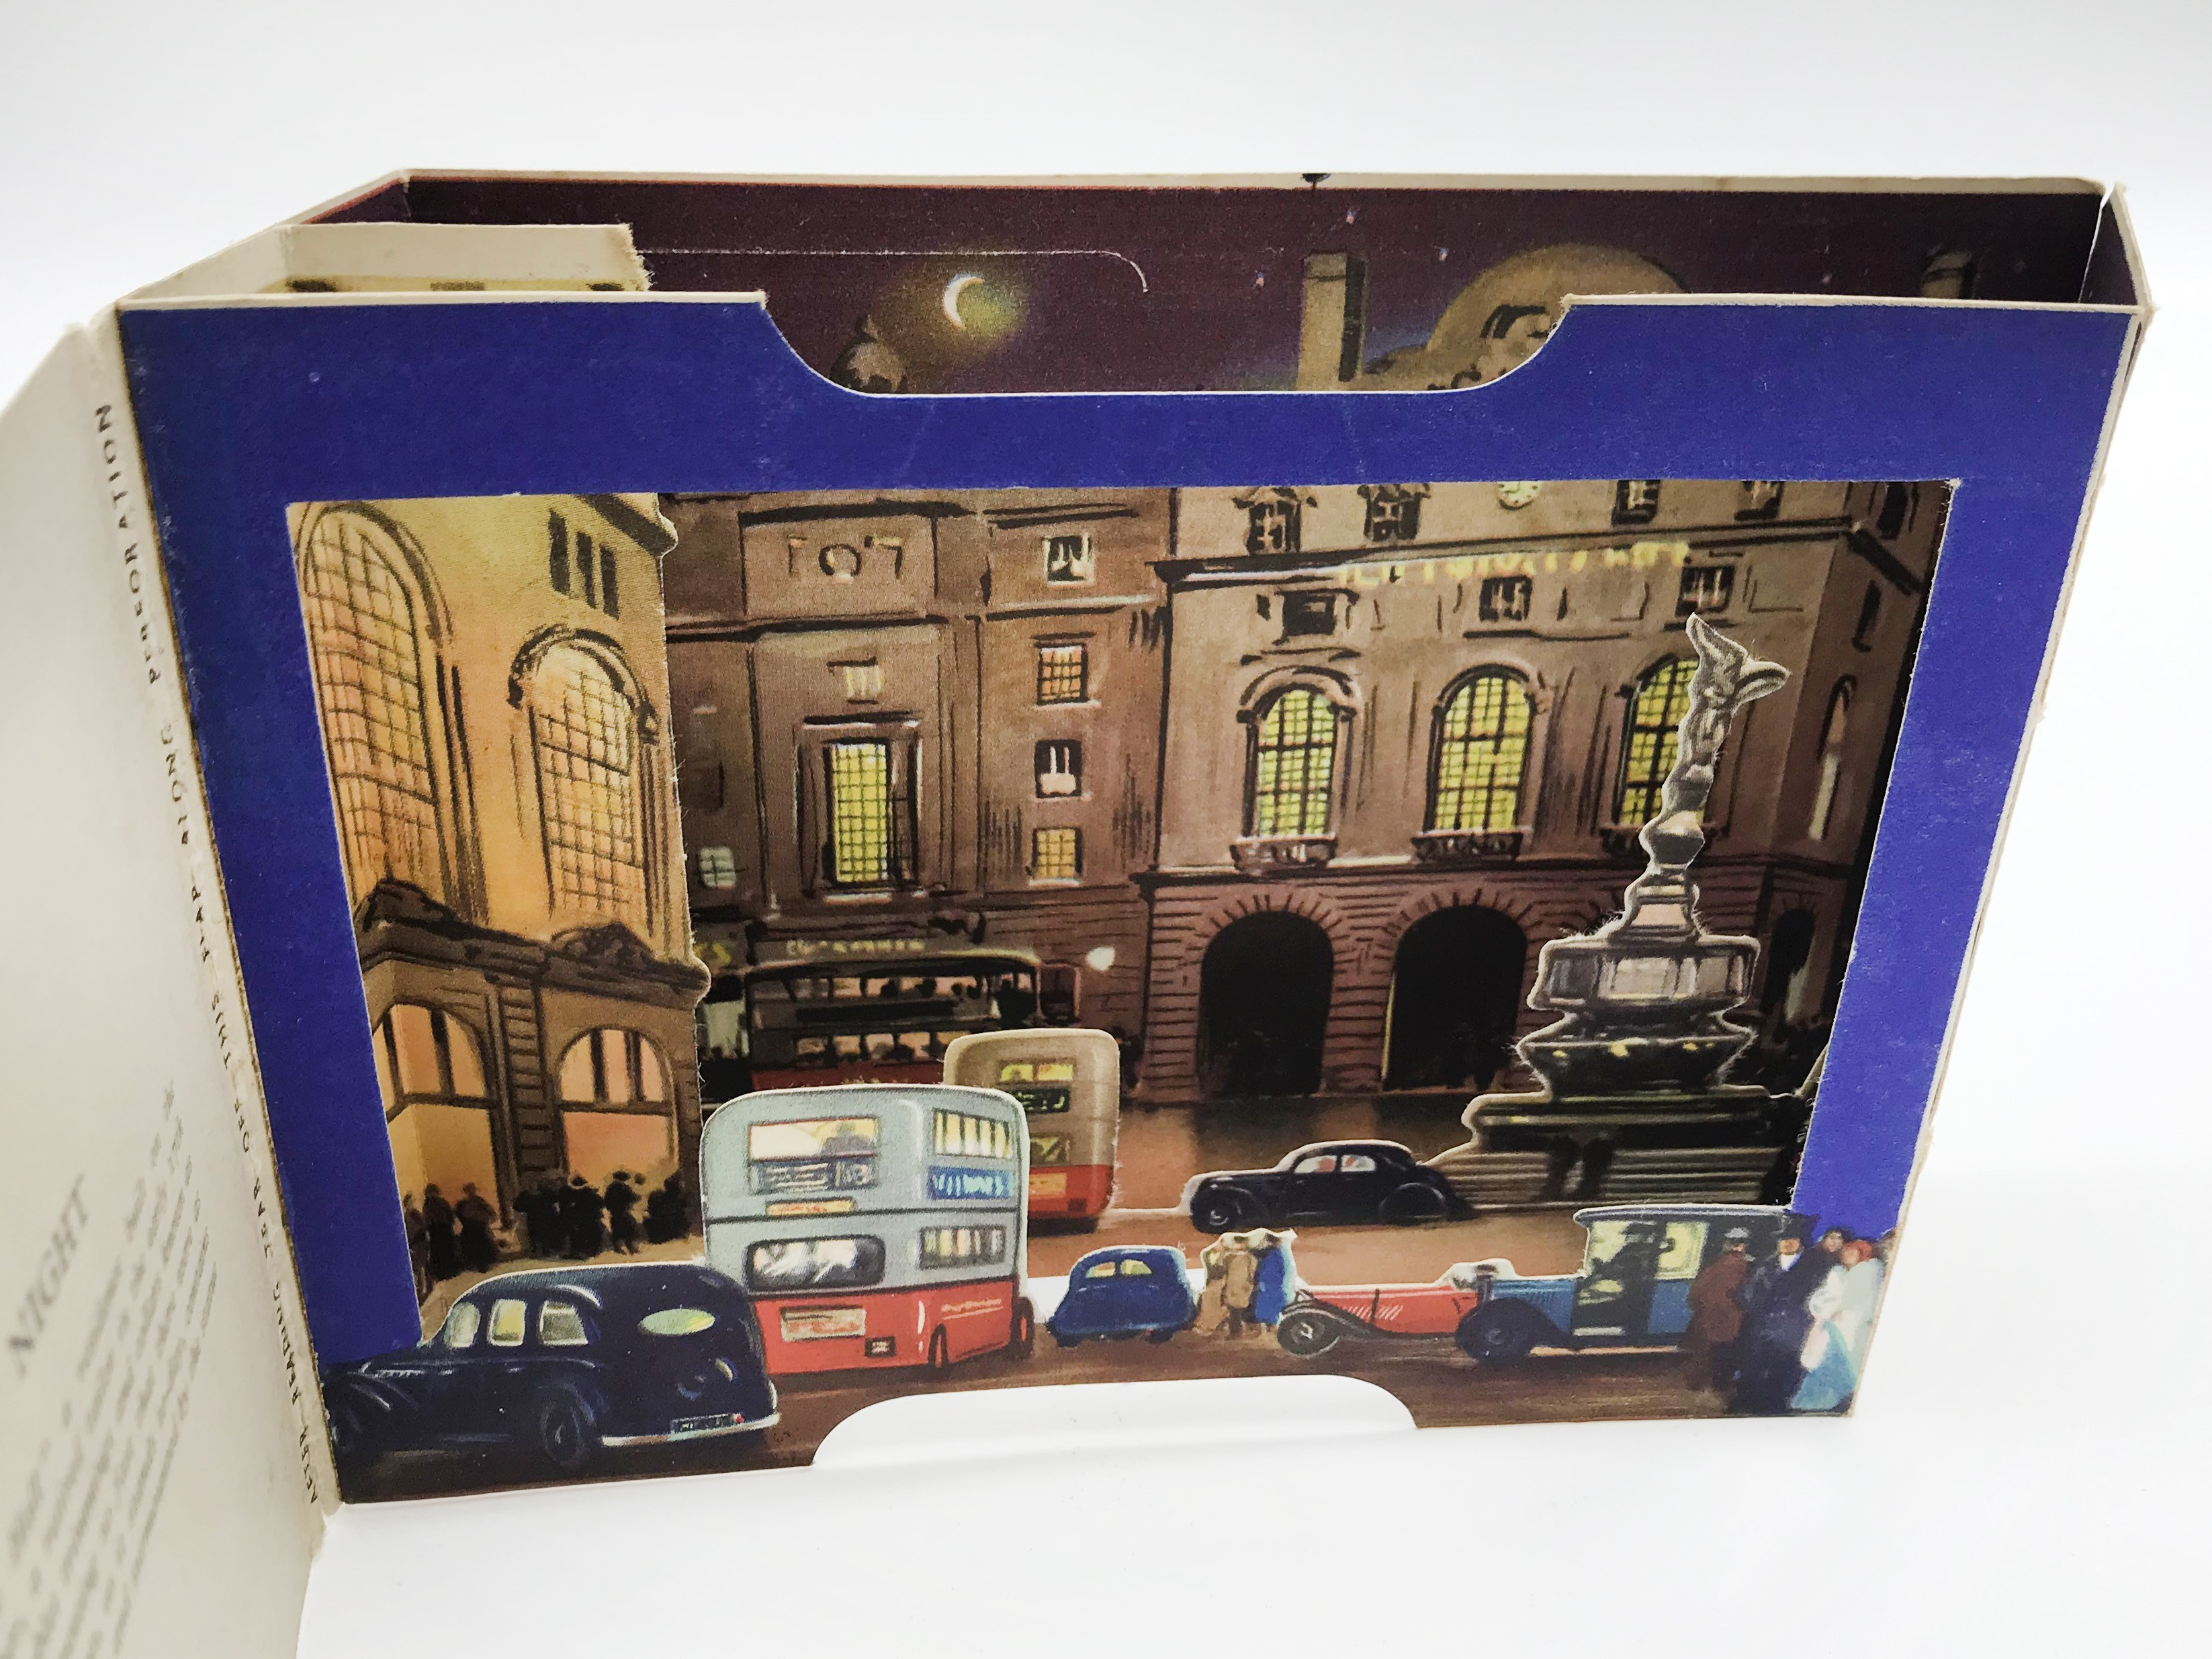 FIVE LONDON POSTCARDS - THE BRENT SERIES OF PANORAMIC VIEW CARDS - Image 11 of 13